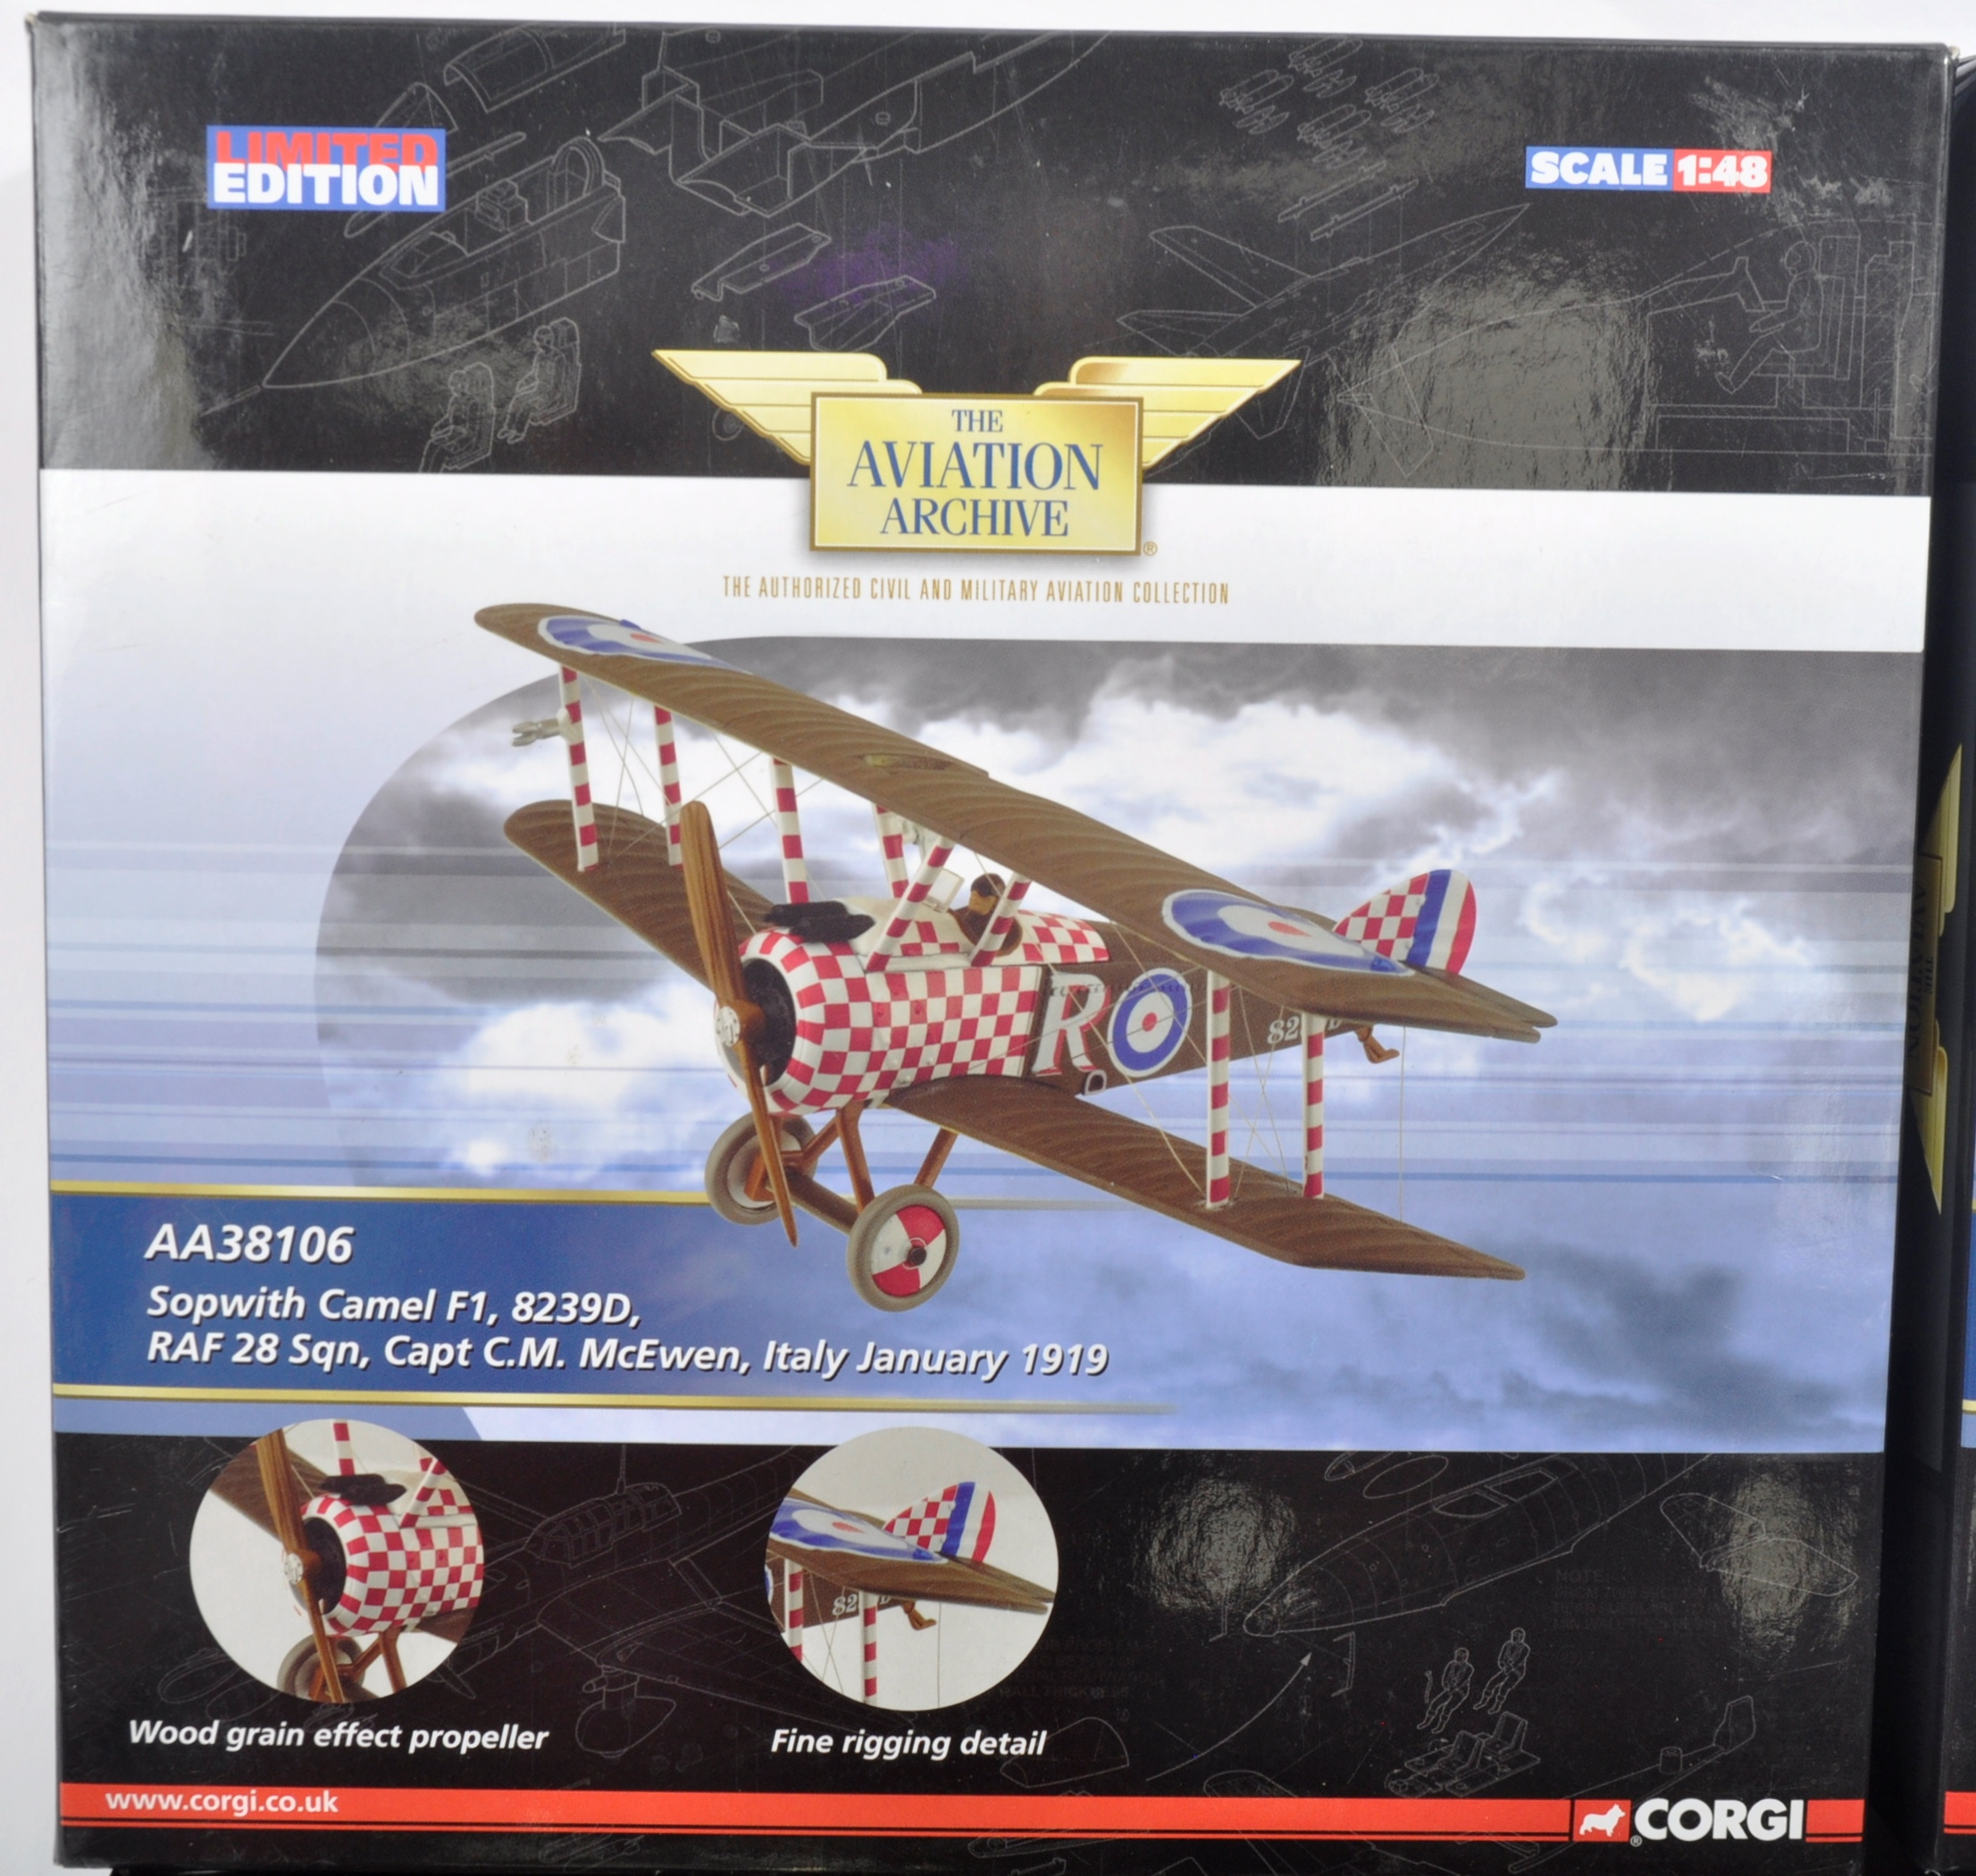 CORGI AVIATION ARCHIVE - TWO BOXED DIECAST MODELS - Image 5 of 6